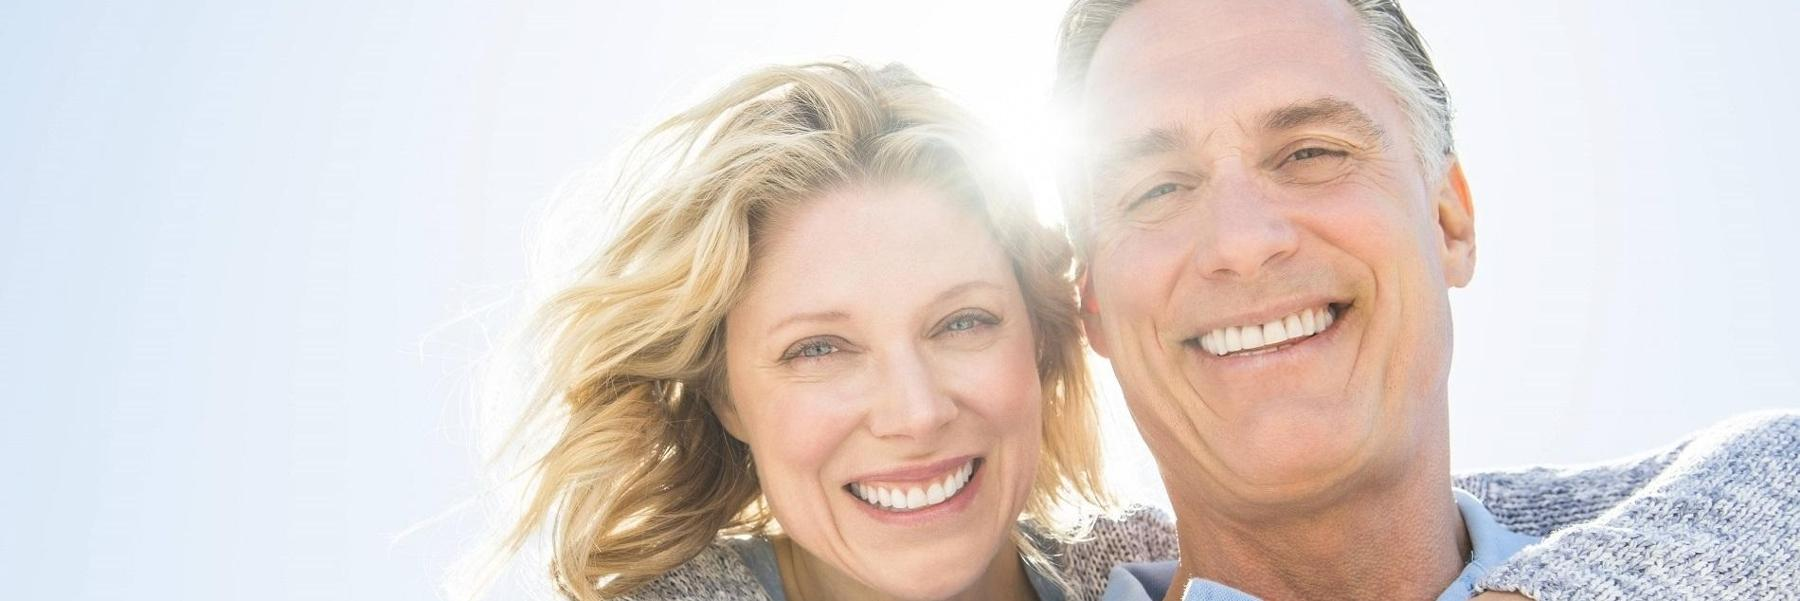 Couple Smiling Outdoors | Dentist in Fort Collins, CO